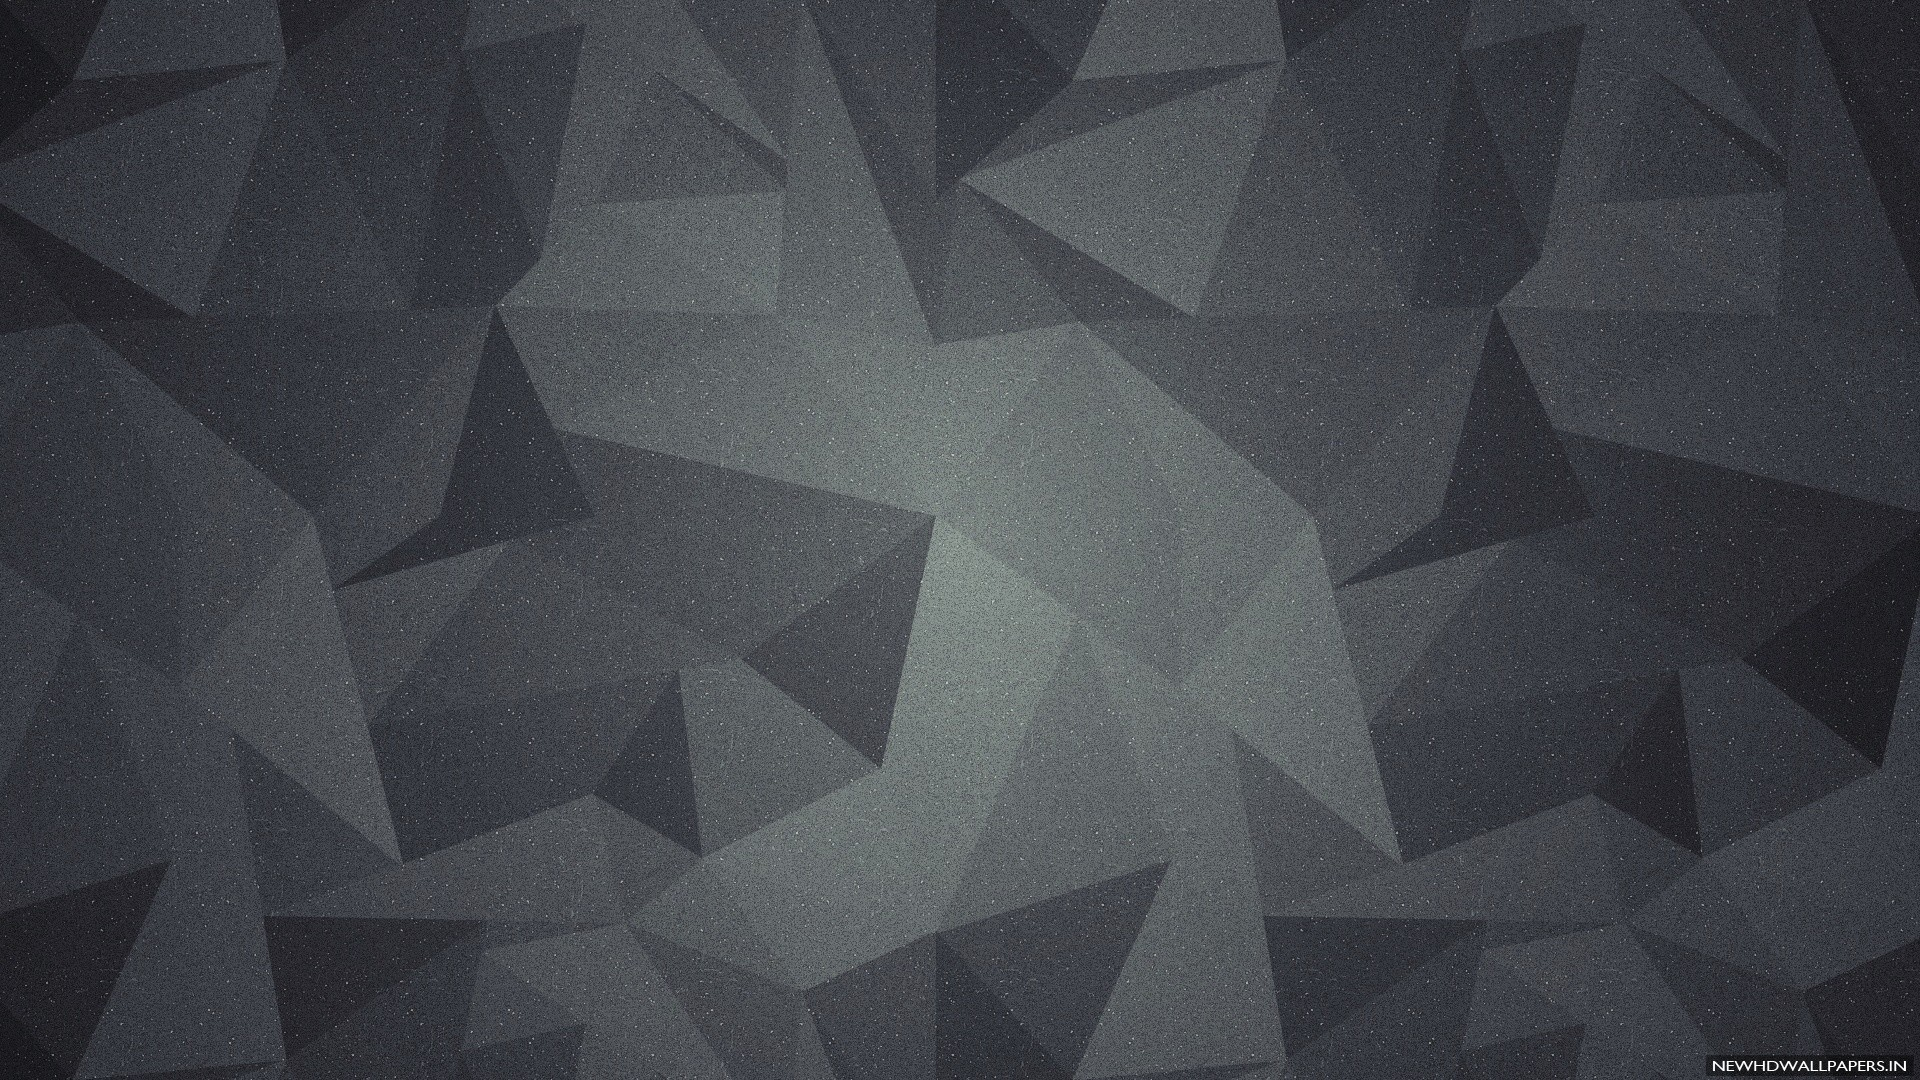 3D geometric abstract shapes dark background .